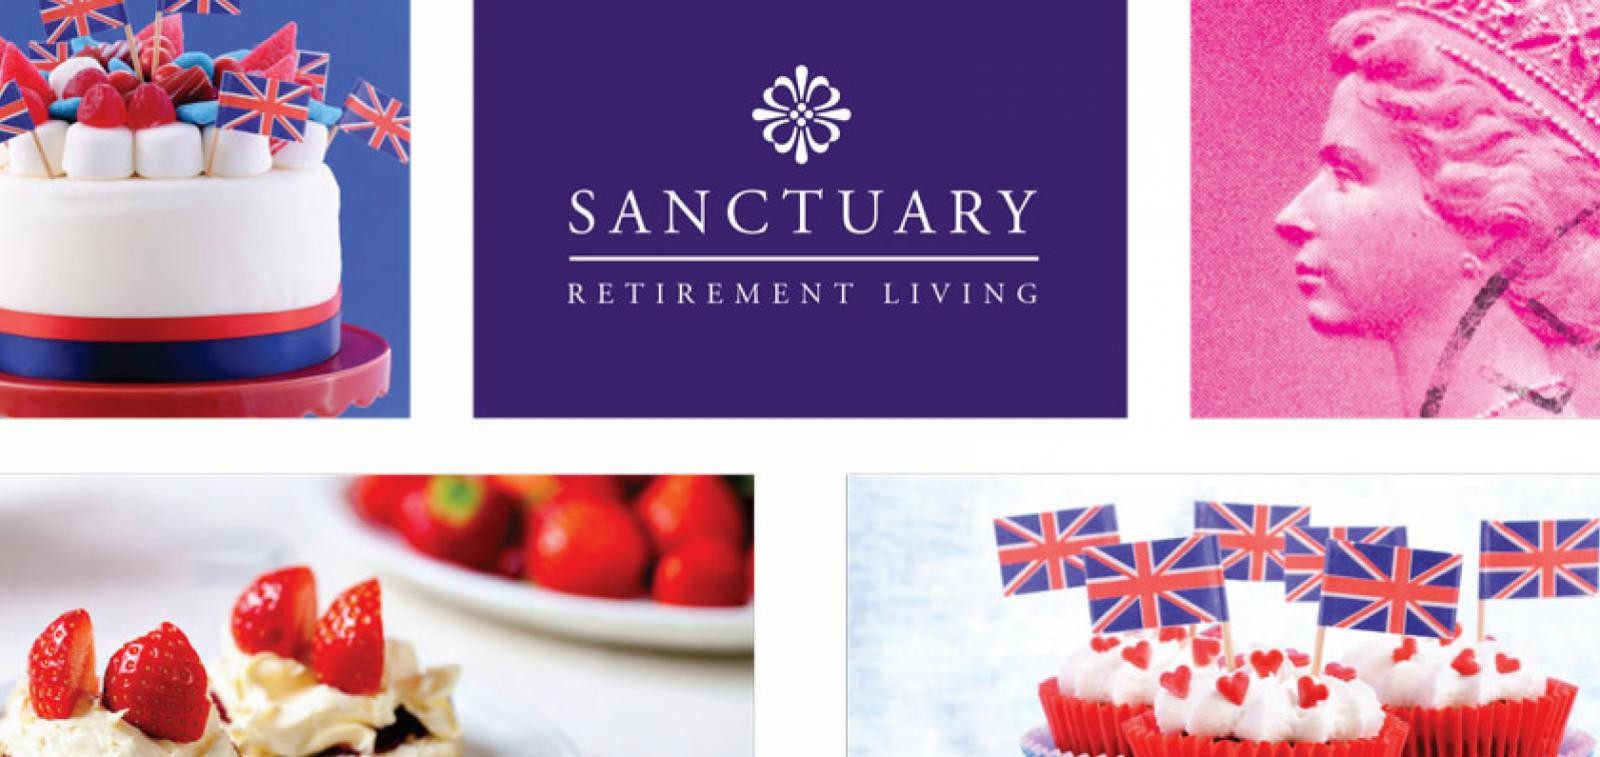 Celebrate the Queens birthday with Sanctuary Retirement Living